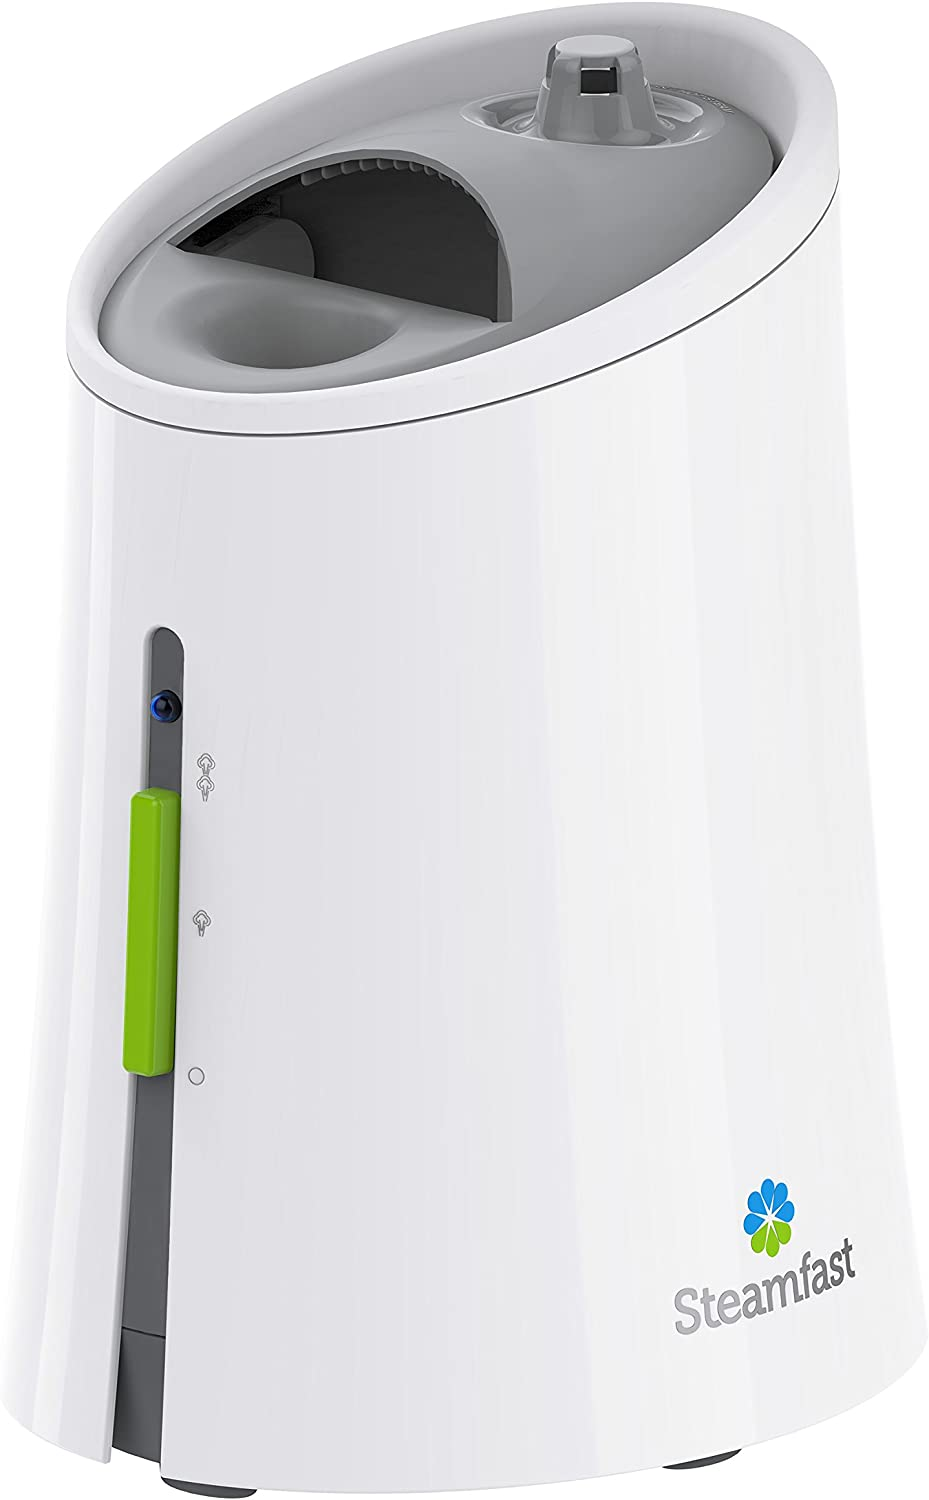 Steamfast Limited Special Price SF-920 Warm Mist Humidifier and Steam Vaporizer with Al sold out. A